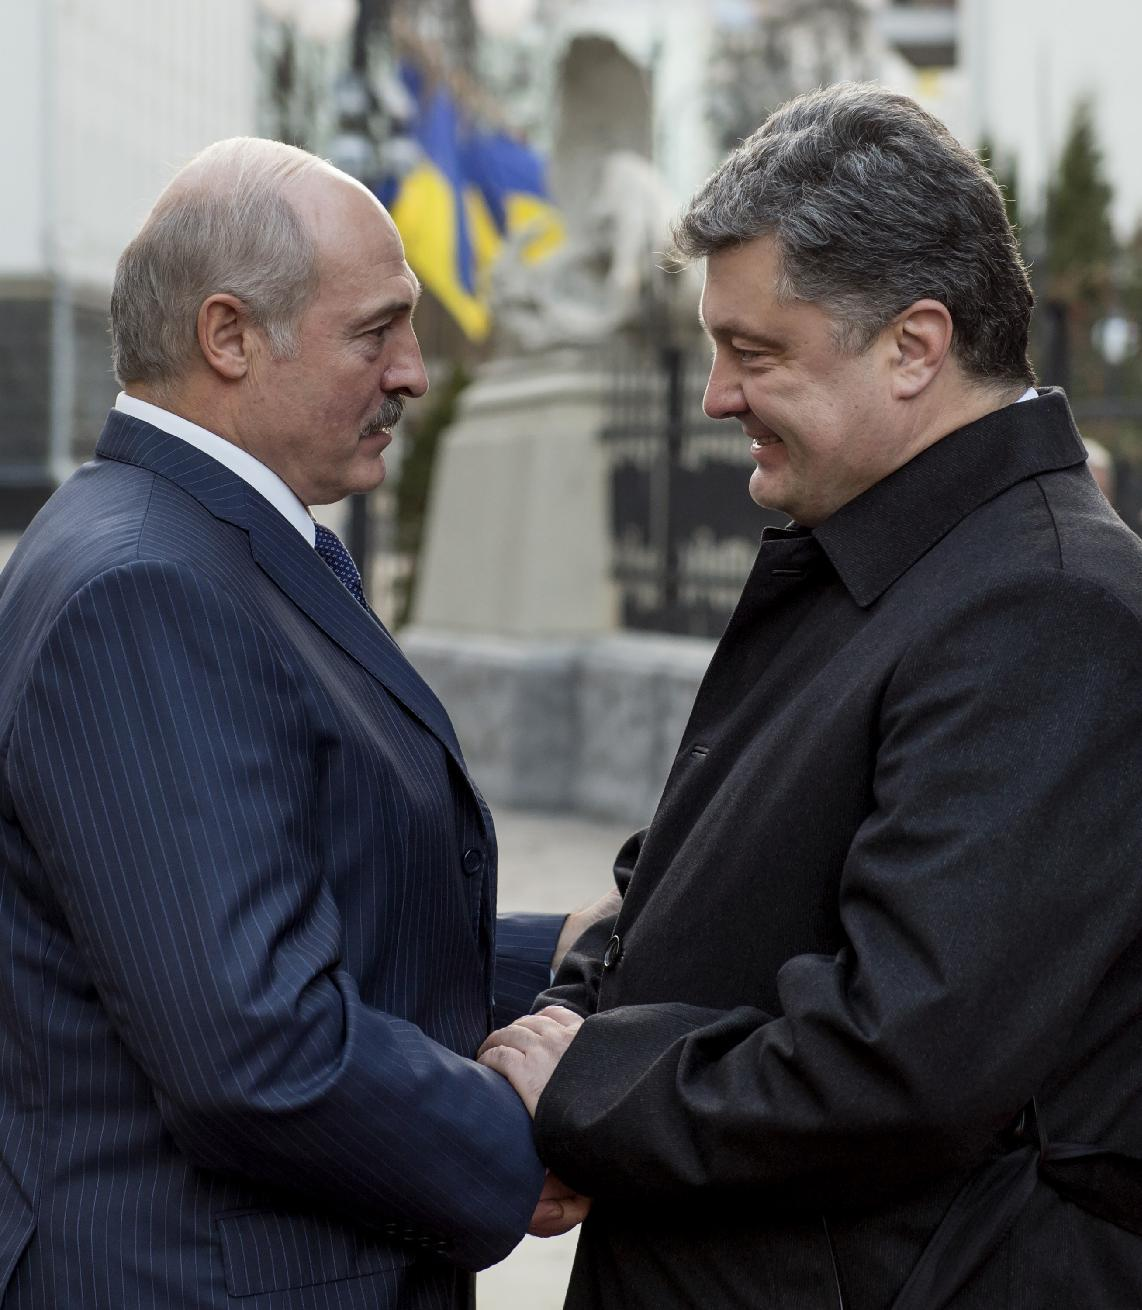 Crisis-hit Russia's top allies forge ties with Ukraine